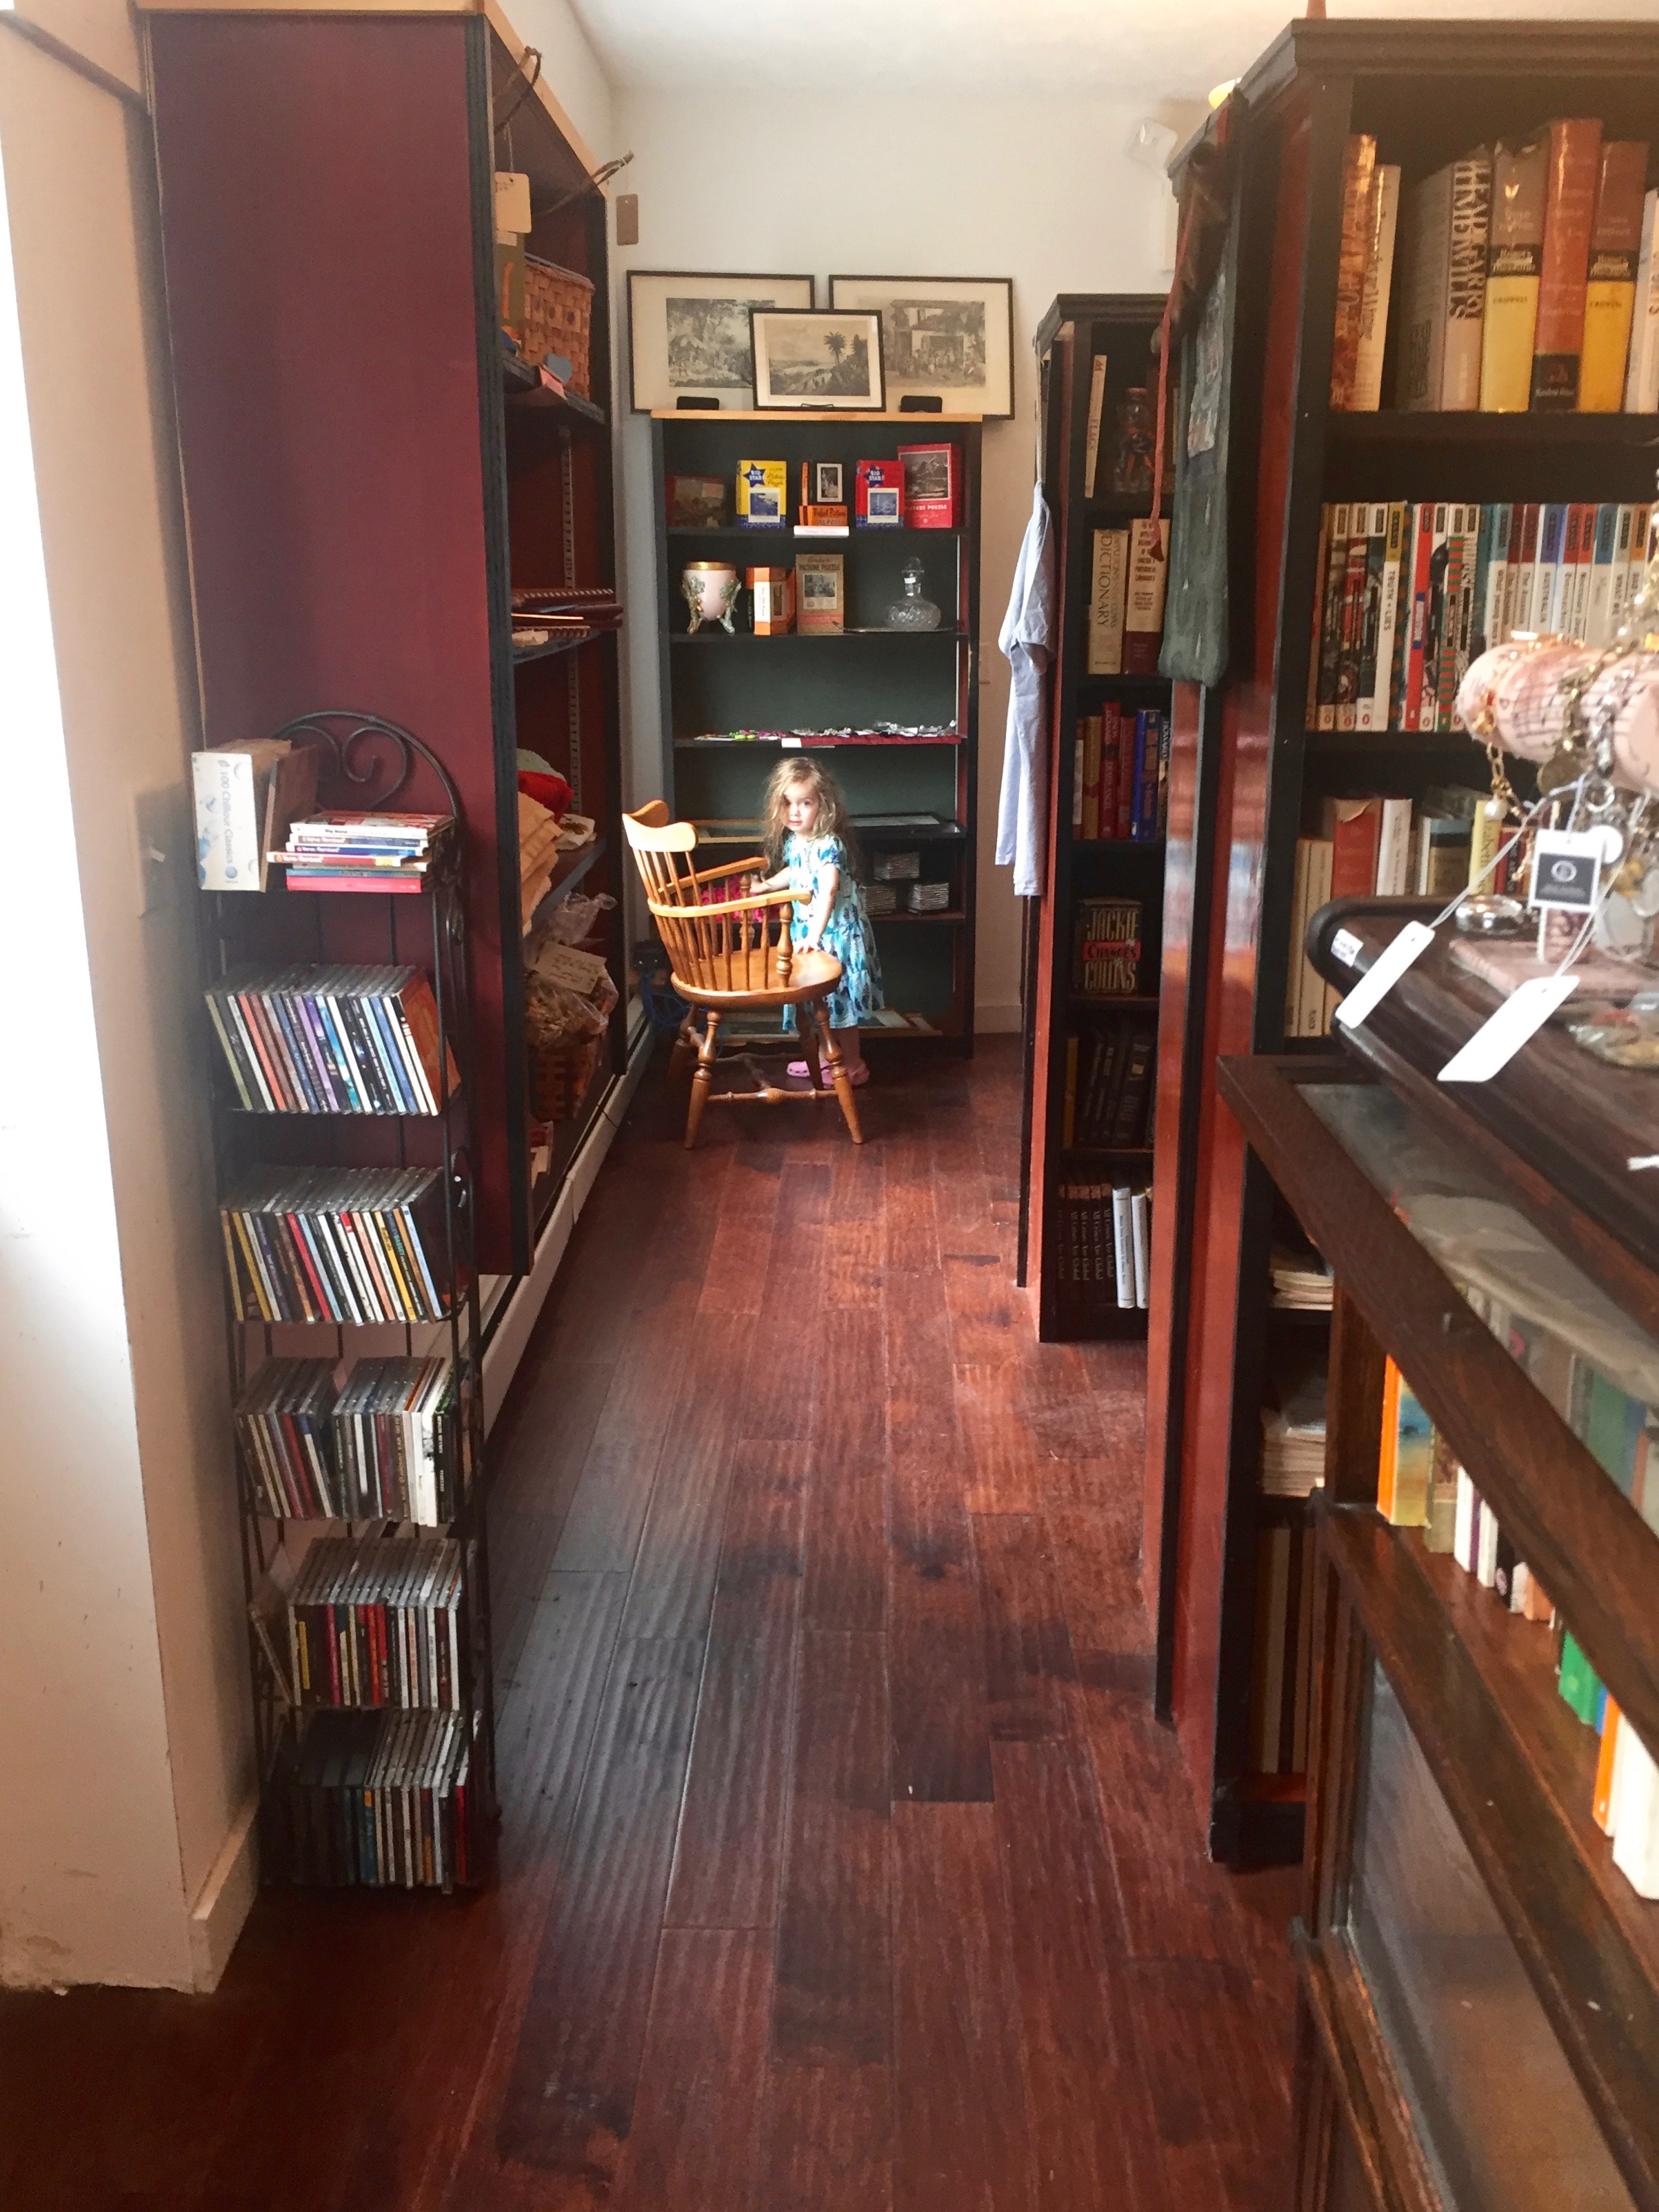 Inside Liberty Rock Books